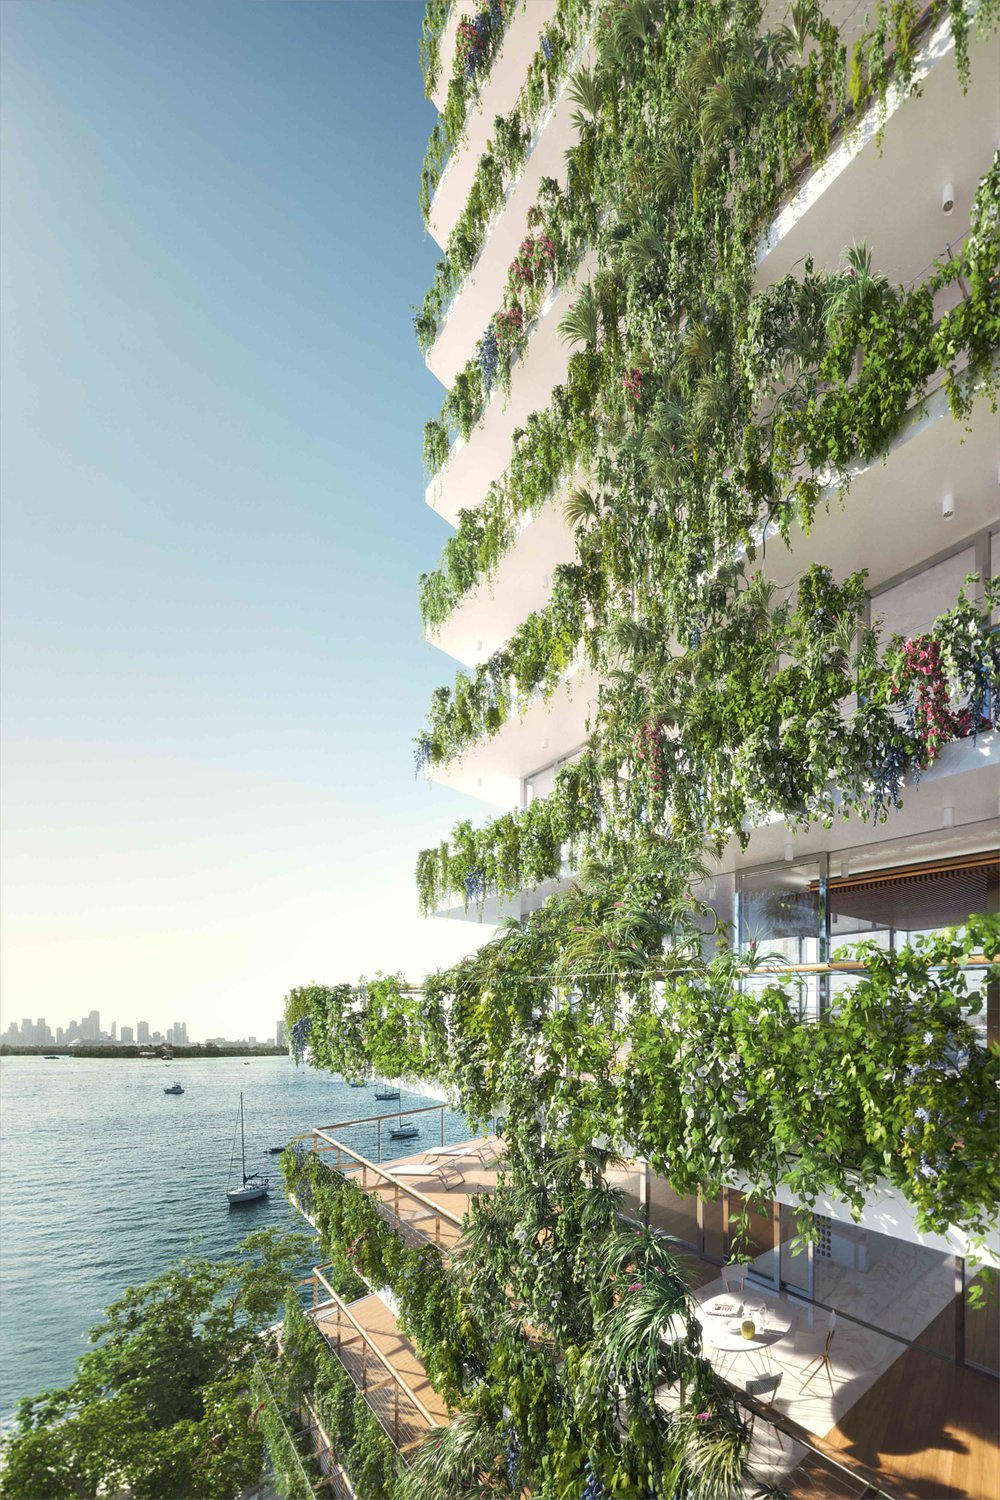 Hanging gardens at Monad Terrace, a new tower on Biscayne Bay designed by Jean Nouvel